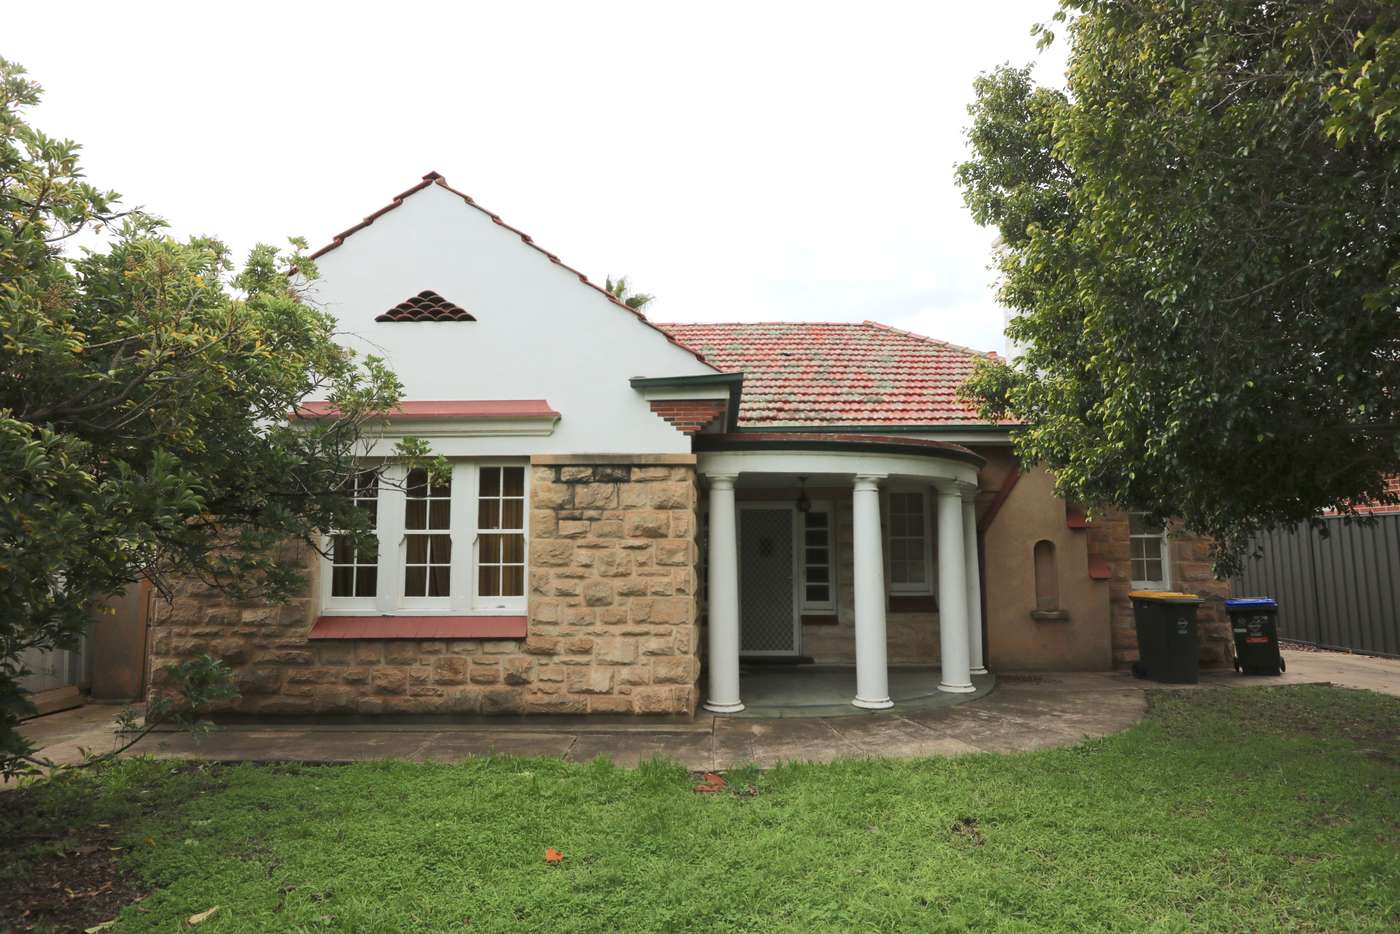 Main view of Homely house listing, 24 Glengarry Street, Woodville South SA 5011